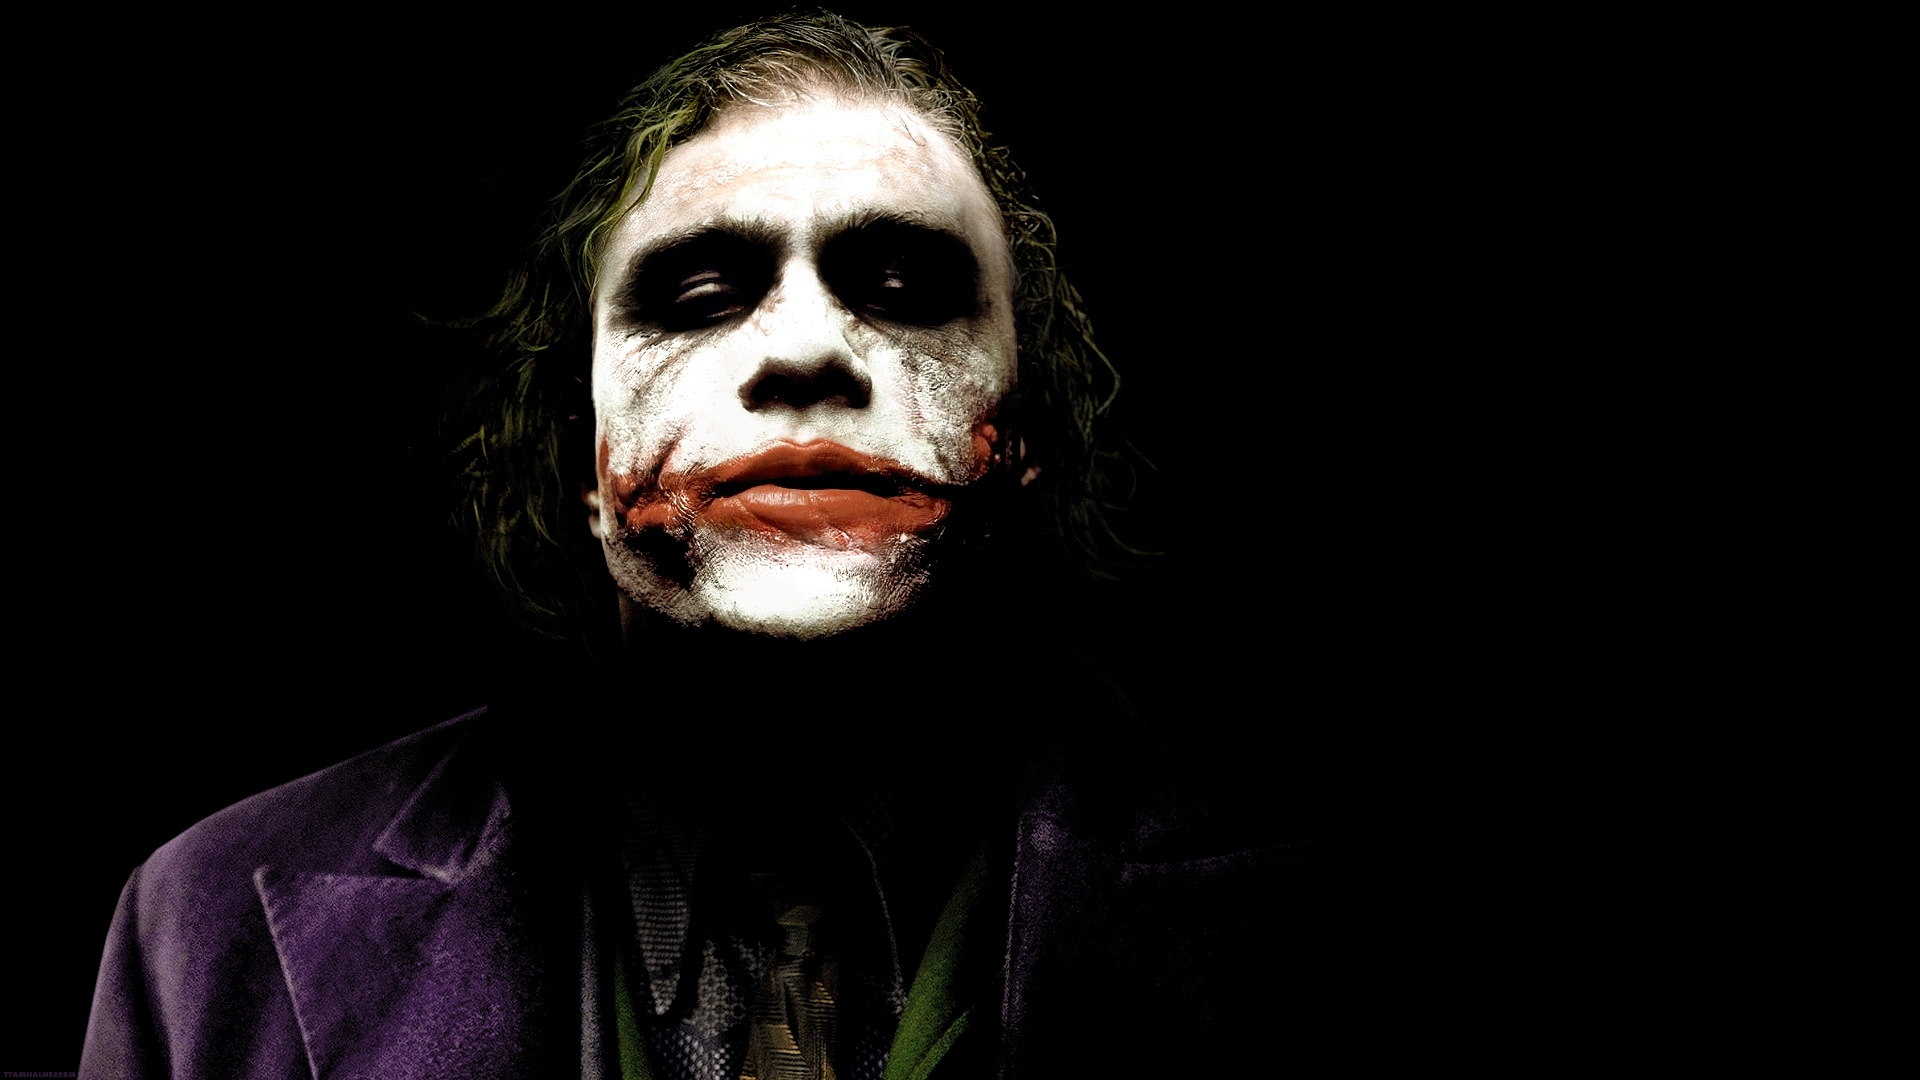 Download hd wallpapers of Joker The Dark Knight Movie 1920x1080